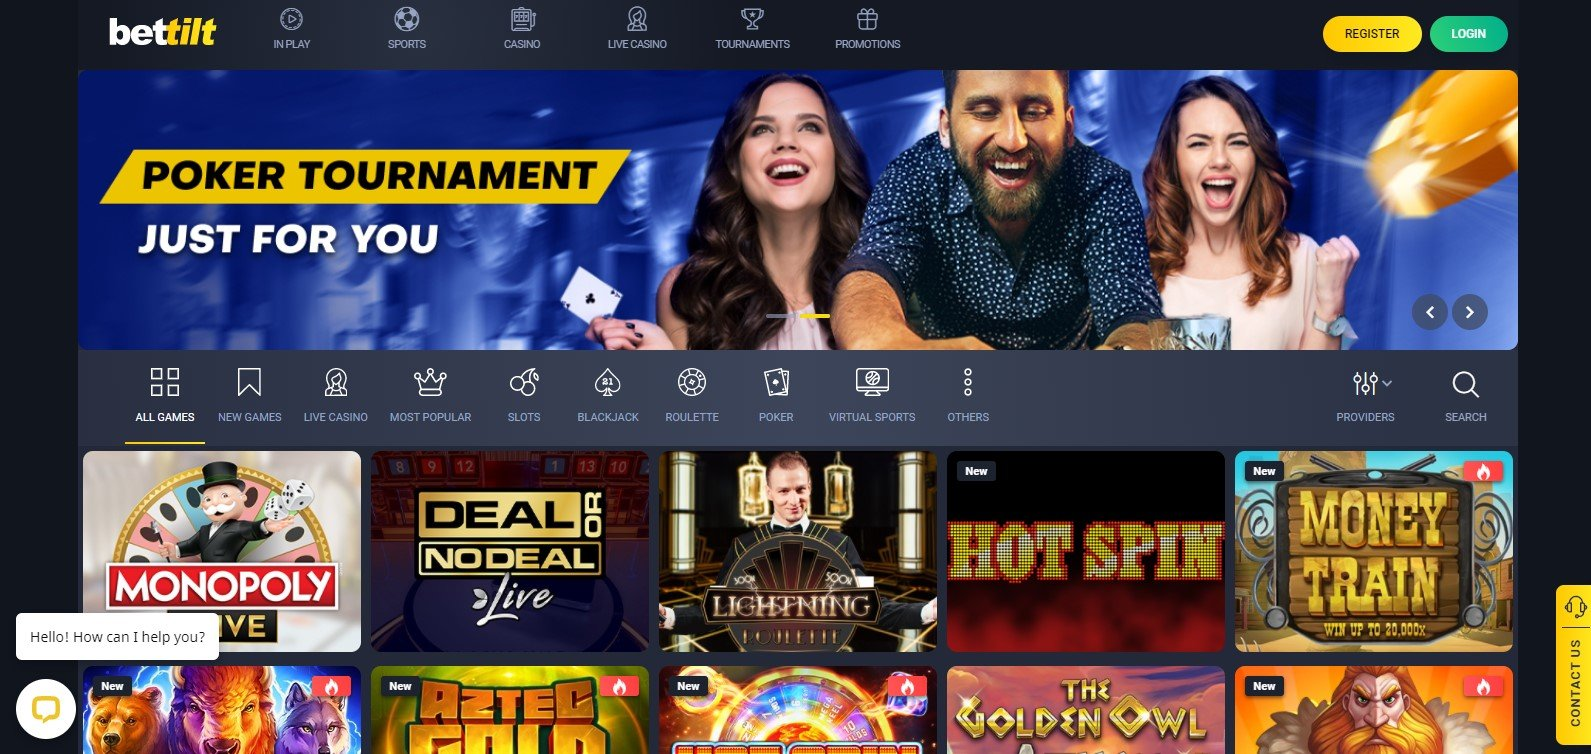 Bettilt Online Casino Screenshot